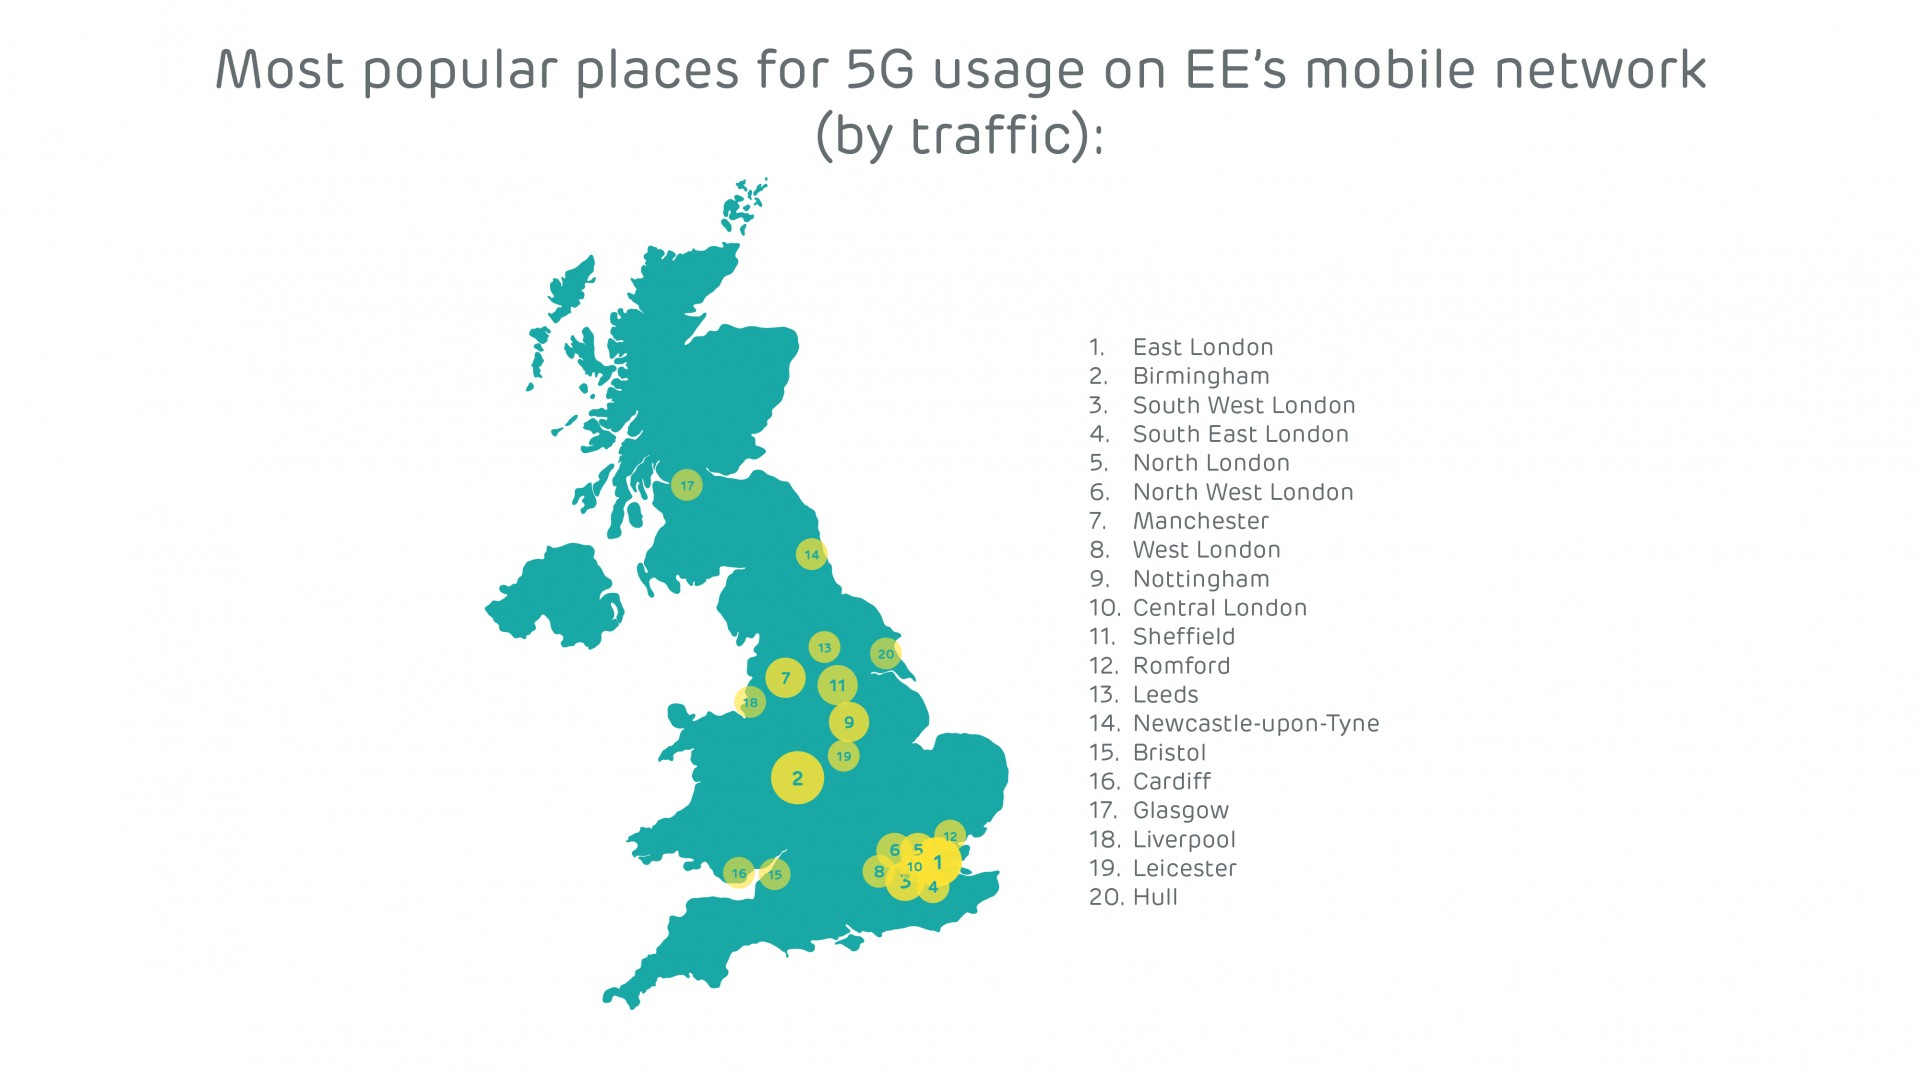 EE Network Index_February_Most popular 5G places_heatmap